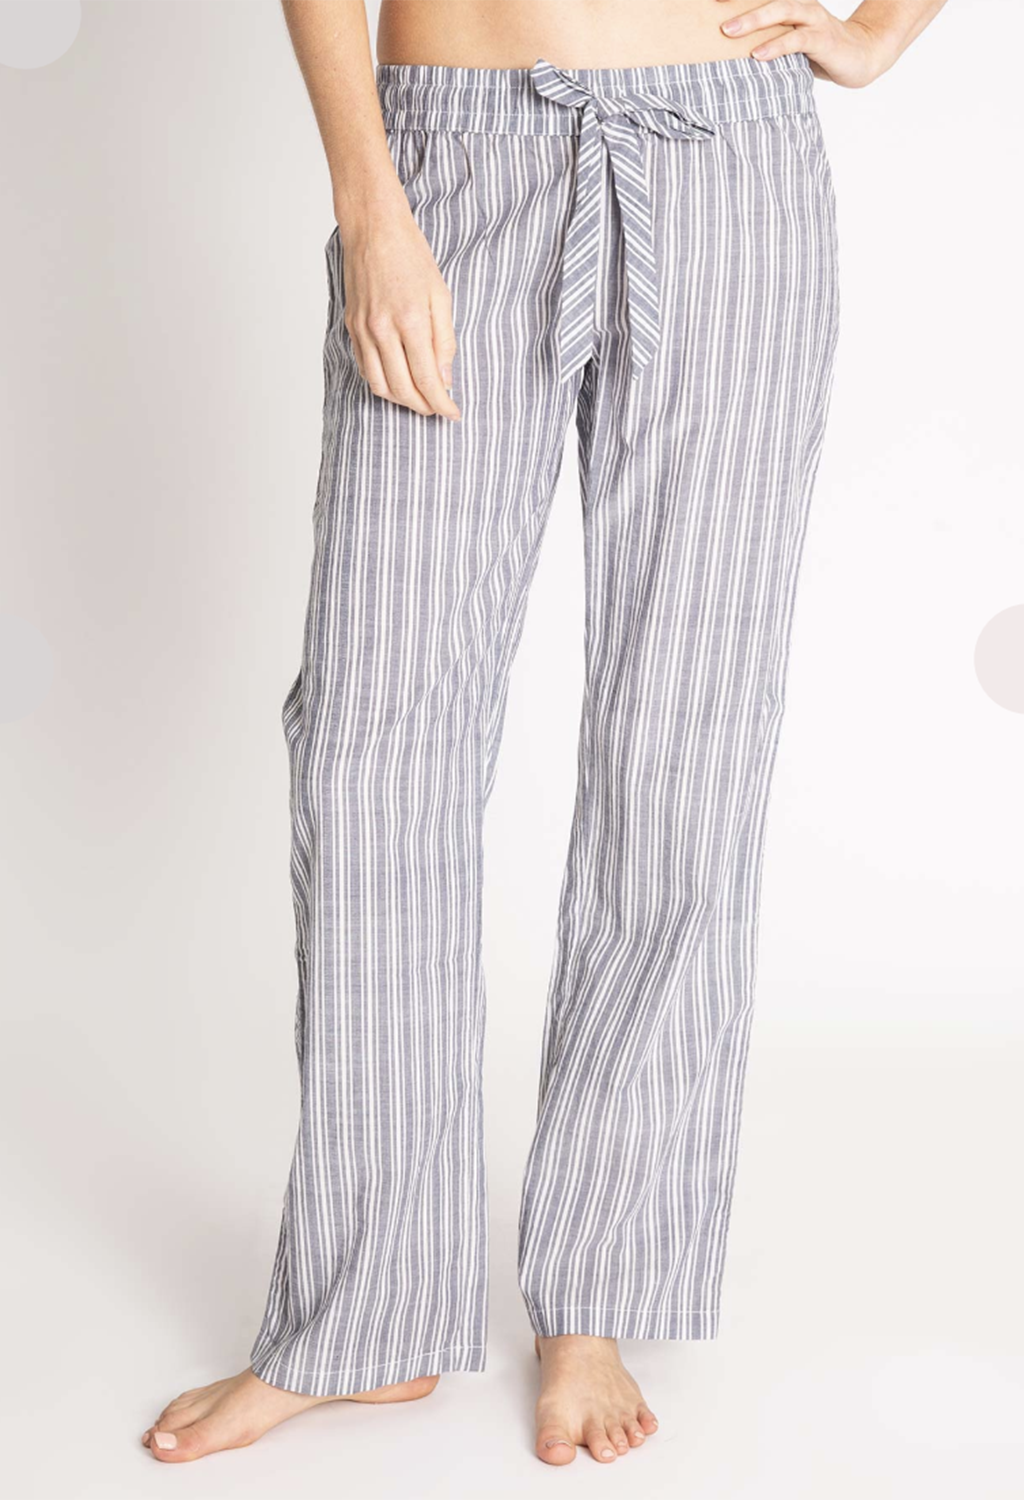 PJ Salvage Cotton Voile Striped Pant - RUST & Co.